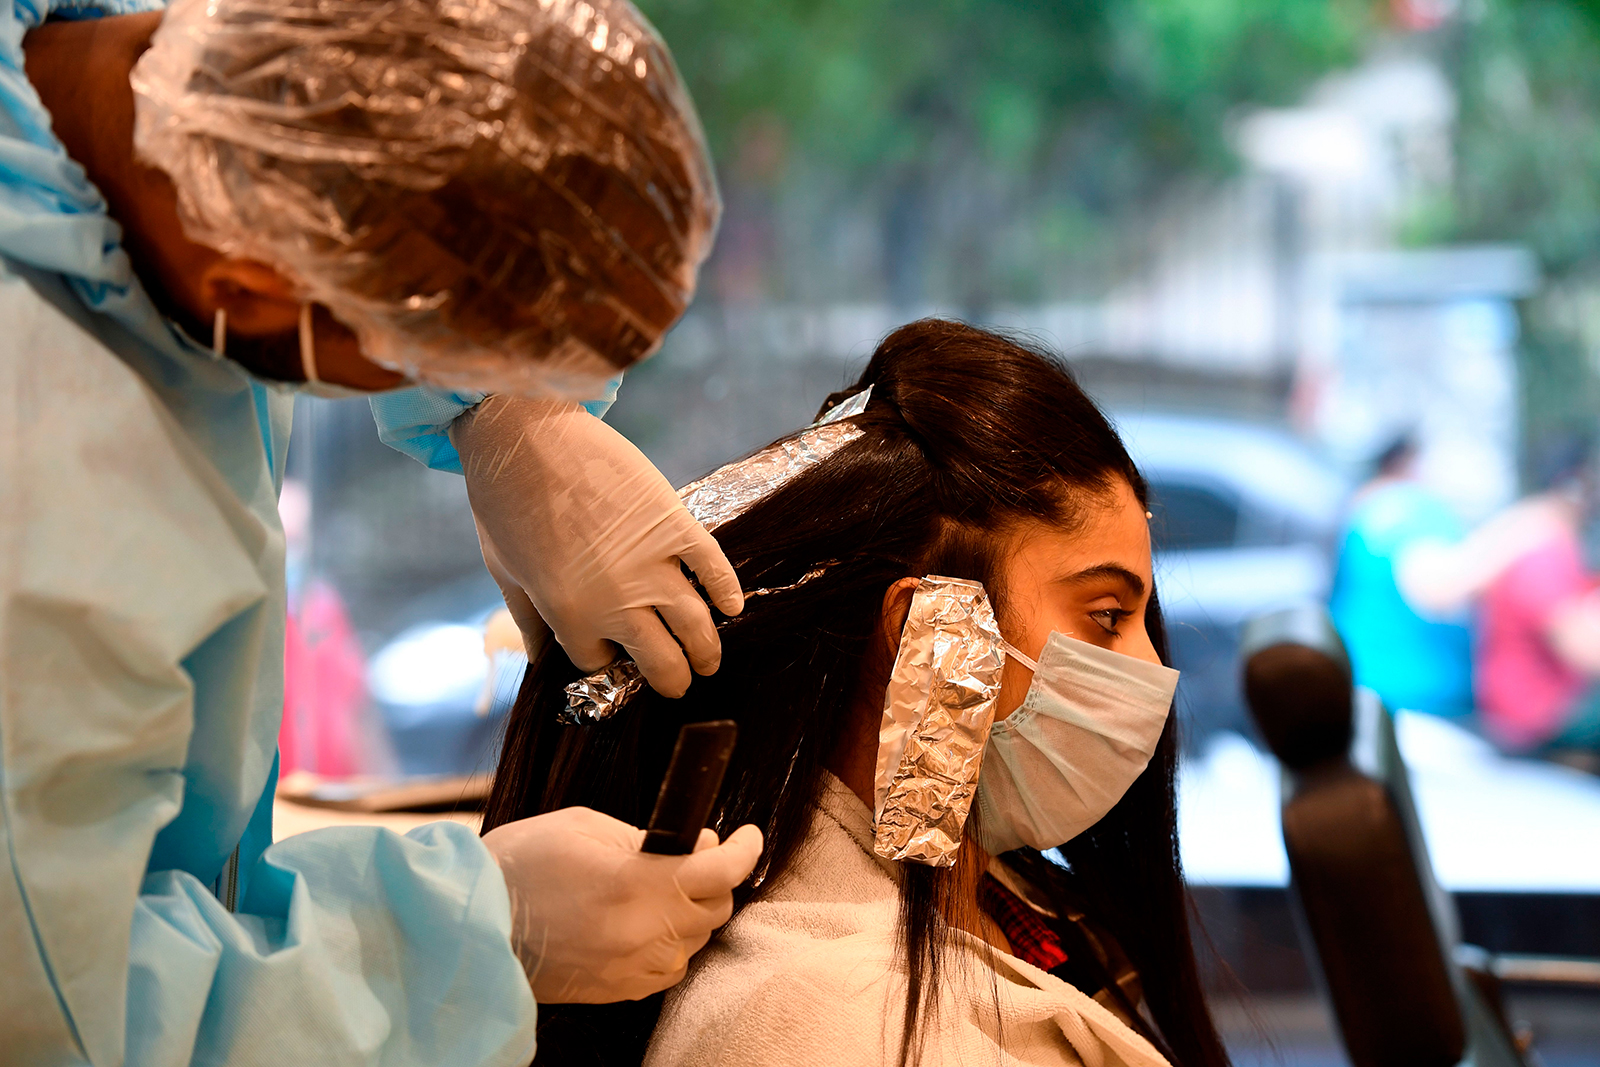 A hairdresser wearing personal protective equipment works on a customer at a hair salon in New Delhi on June 9.